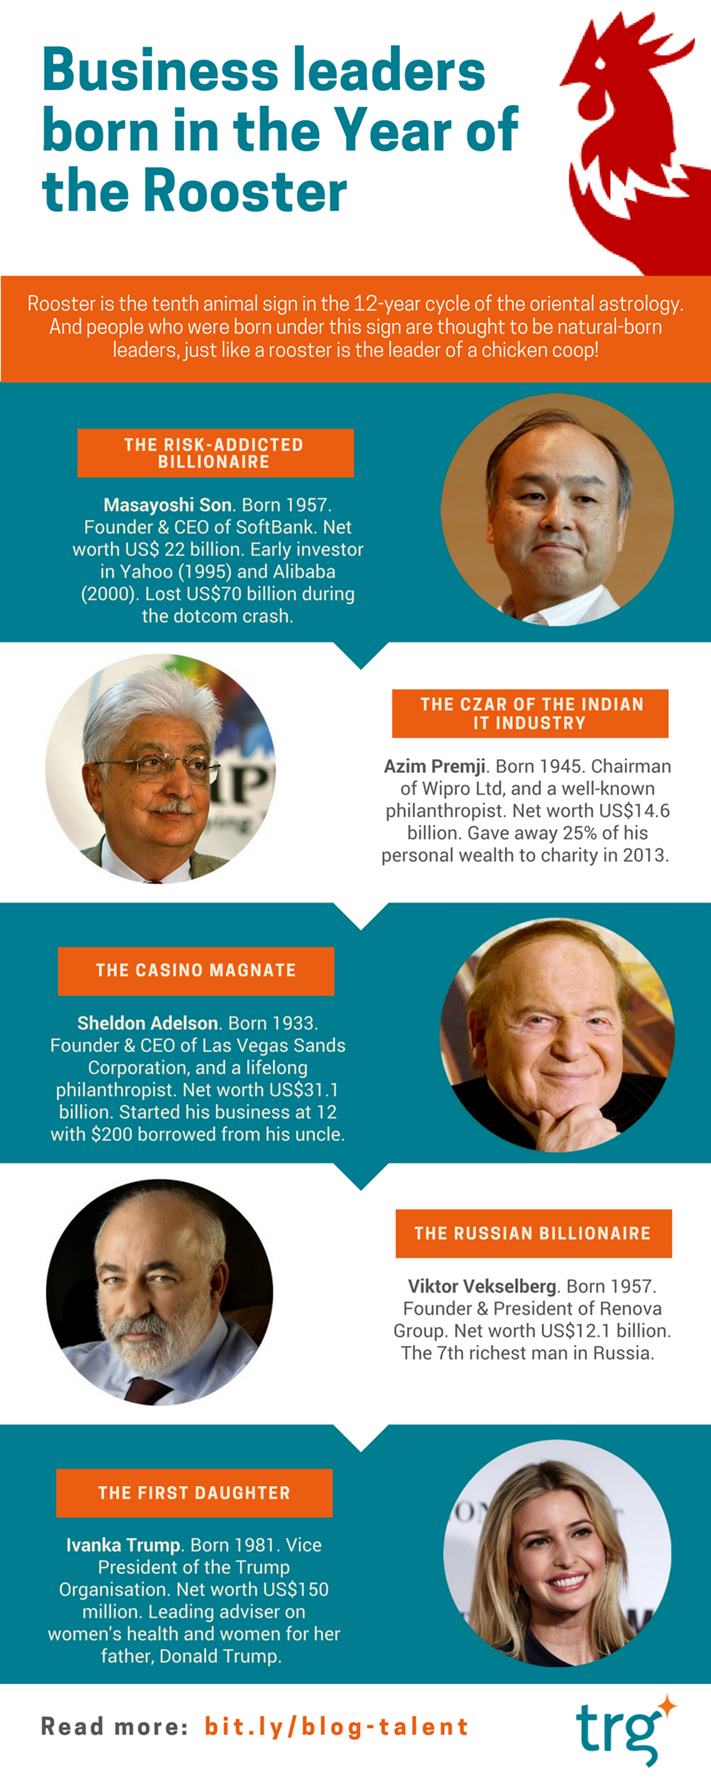 Business-leaders-born-year-Rooster-711.png